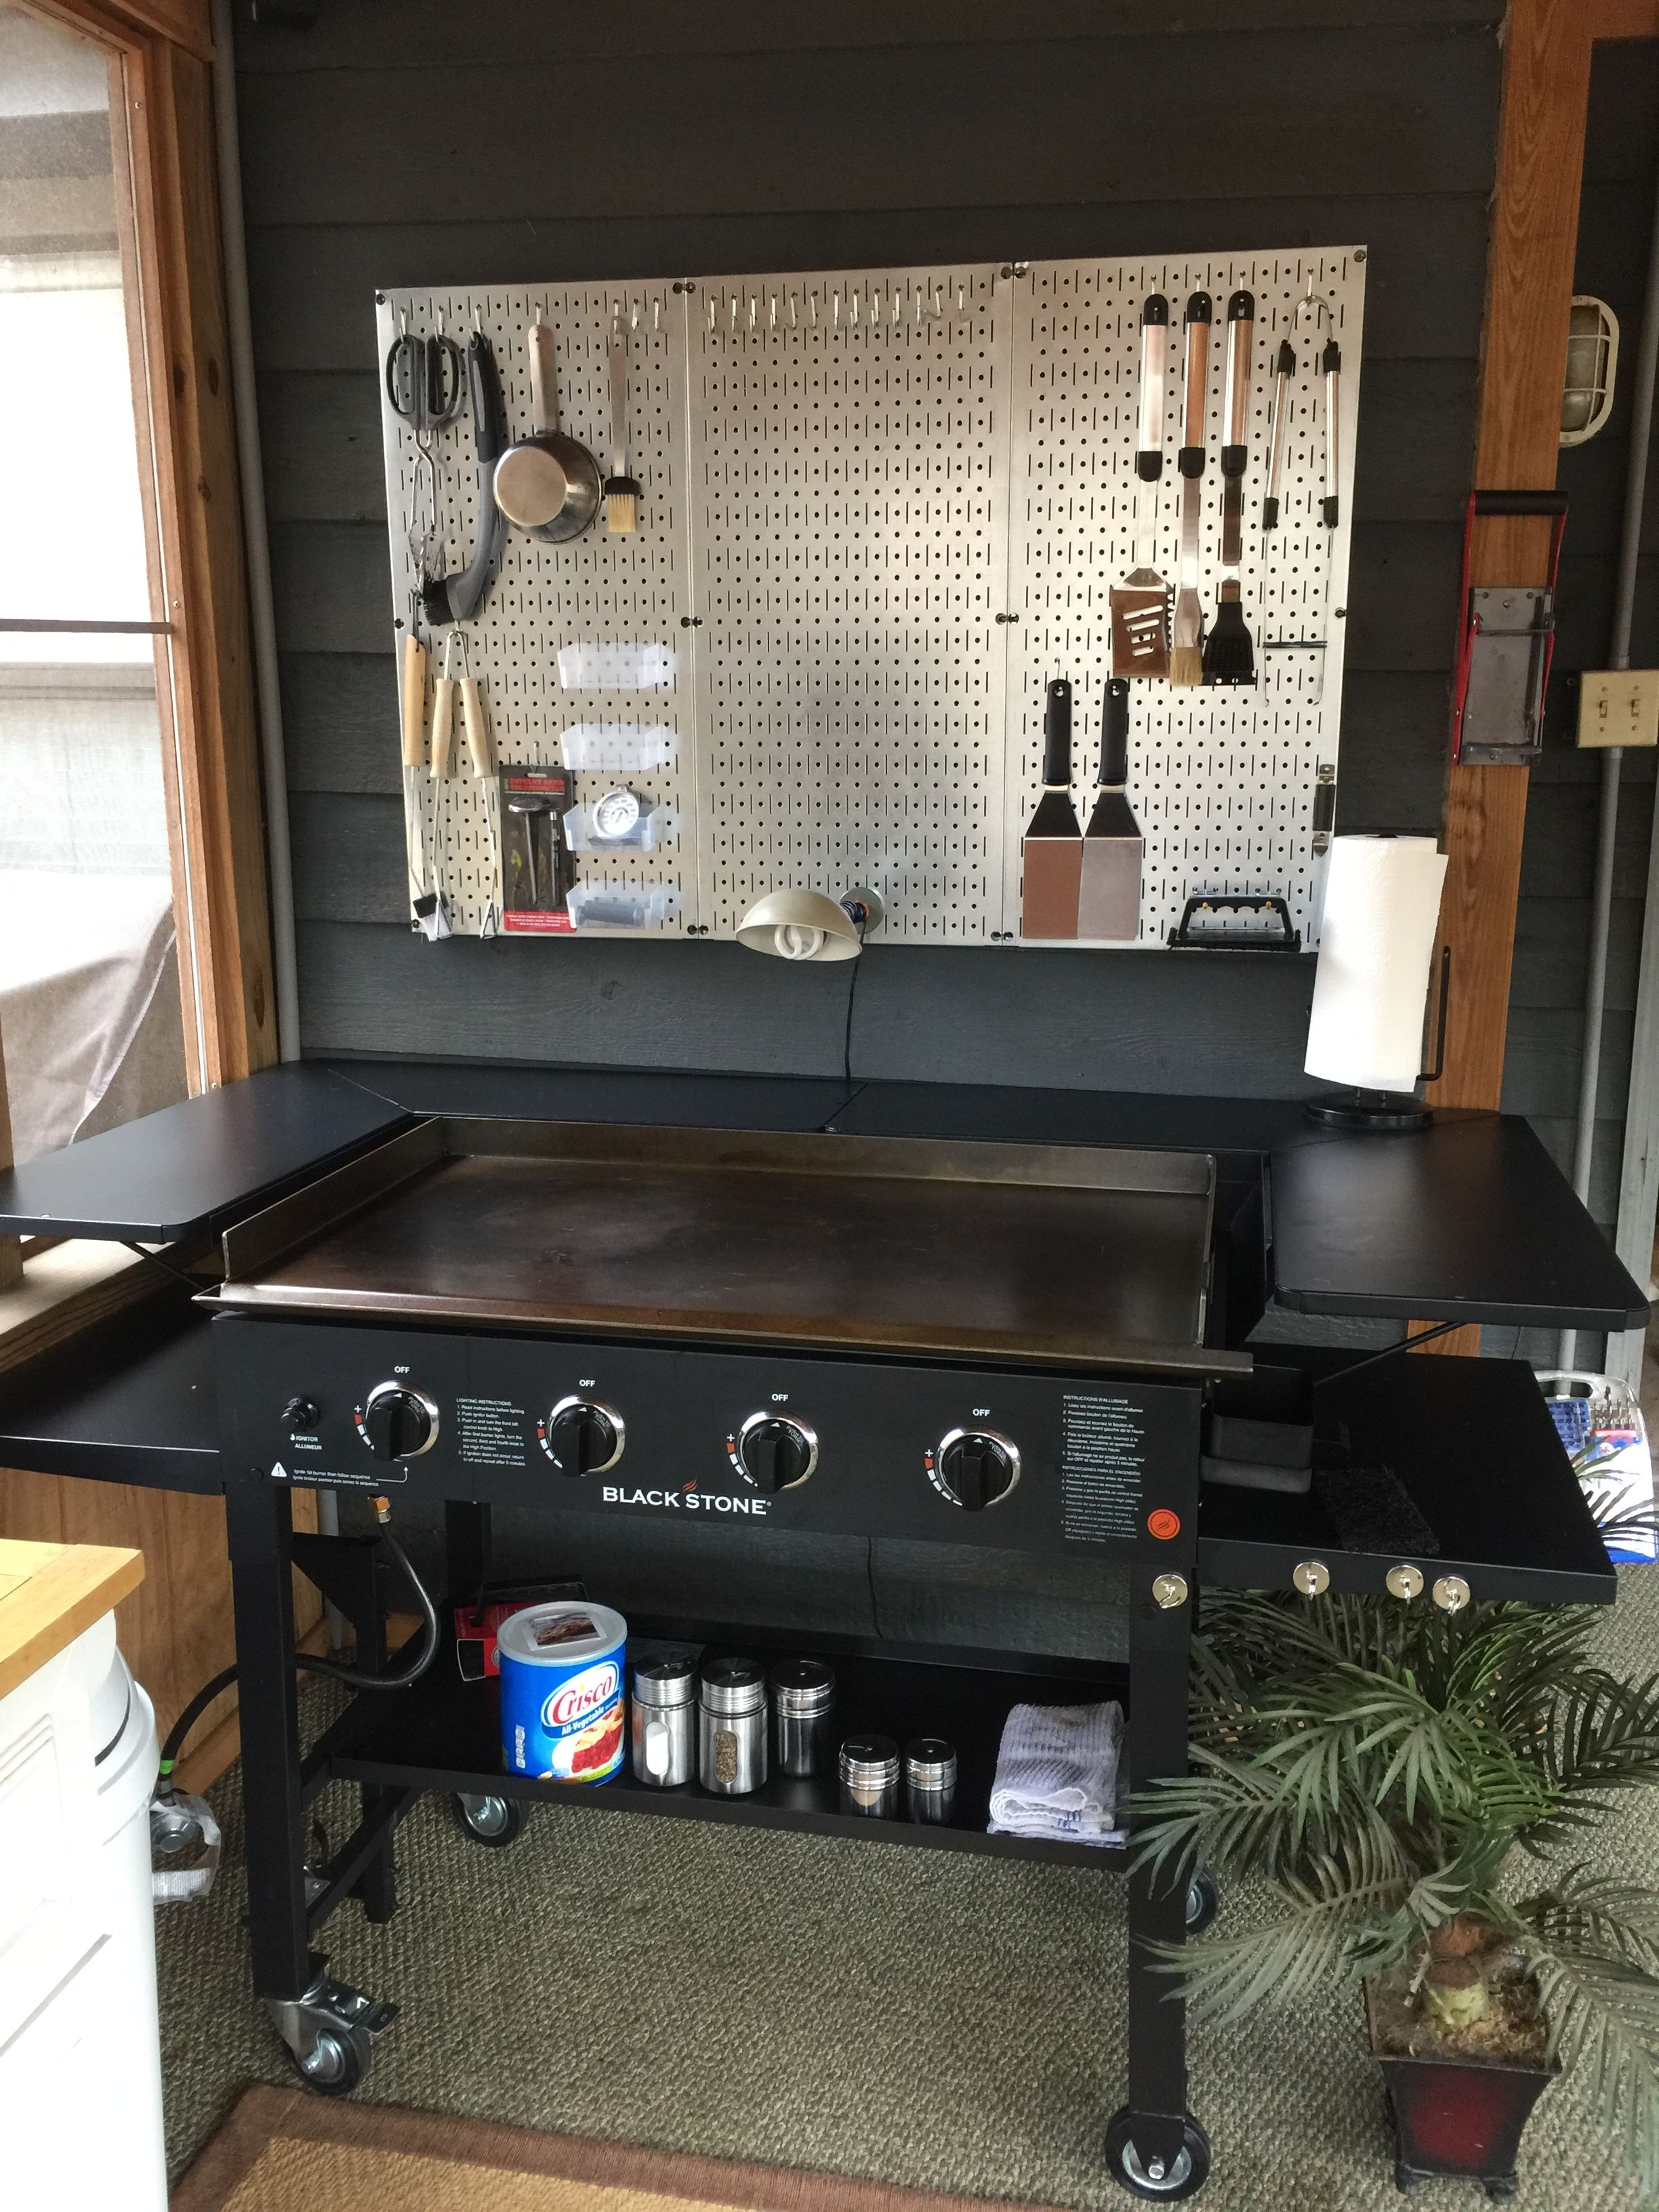 Adf26427f20d5913d640383e5ad459a2 Jpg 2448 3264 Outdoor Kitchen Patio Backyard Kitchen Flat Top Grill